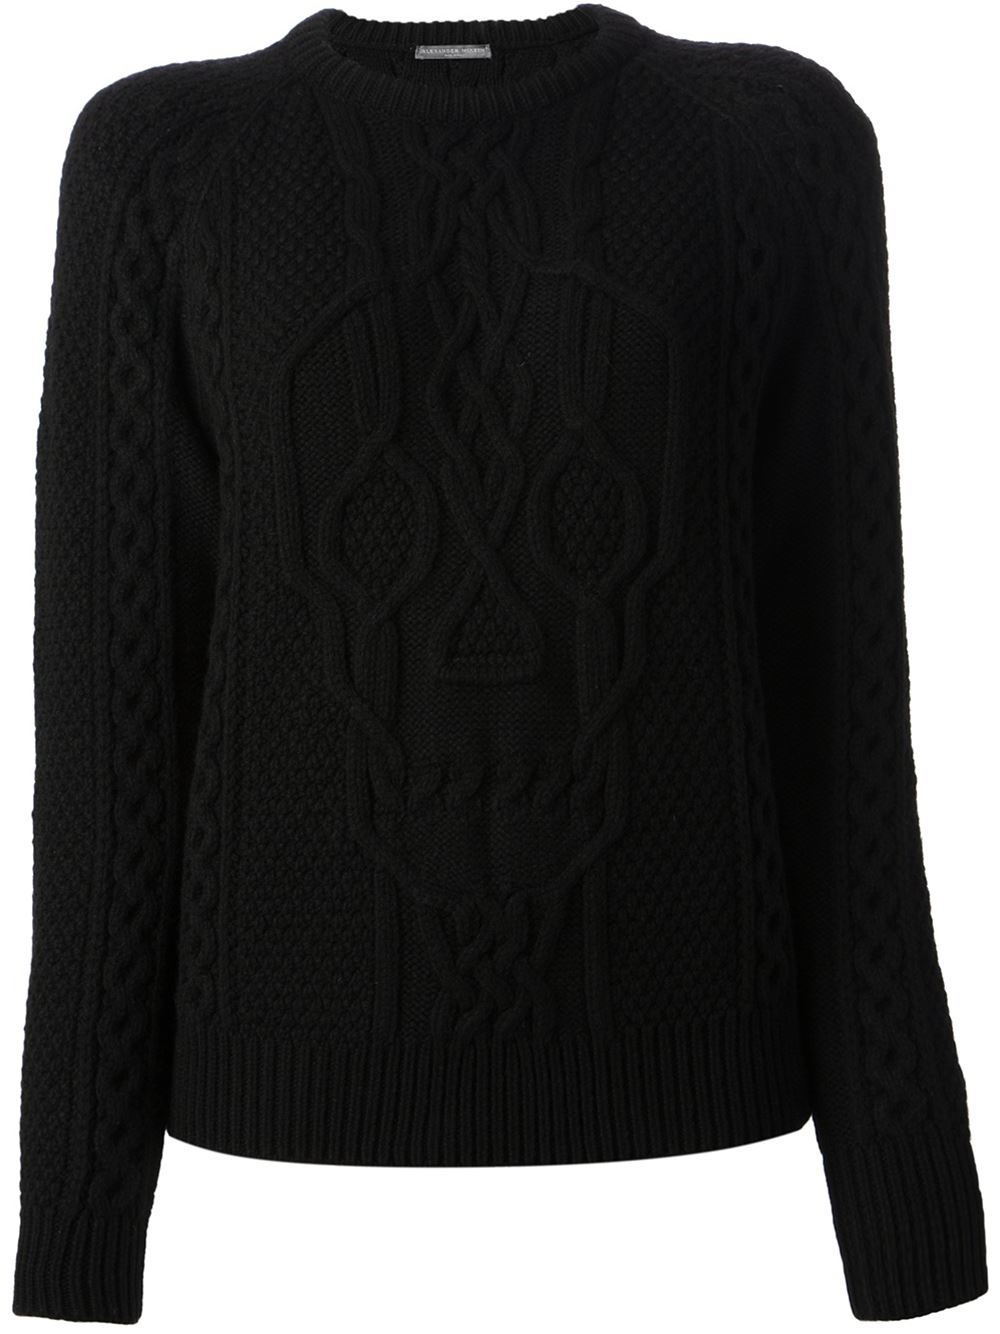 Alexander mcqueen Skull Cable Knit Sweater in Black | Lyst